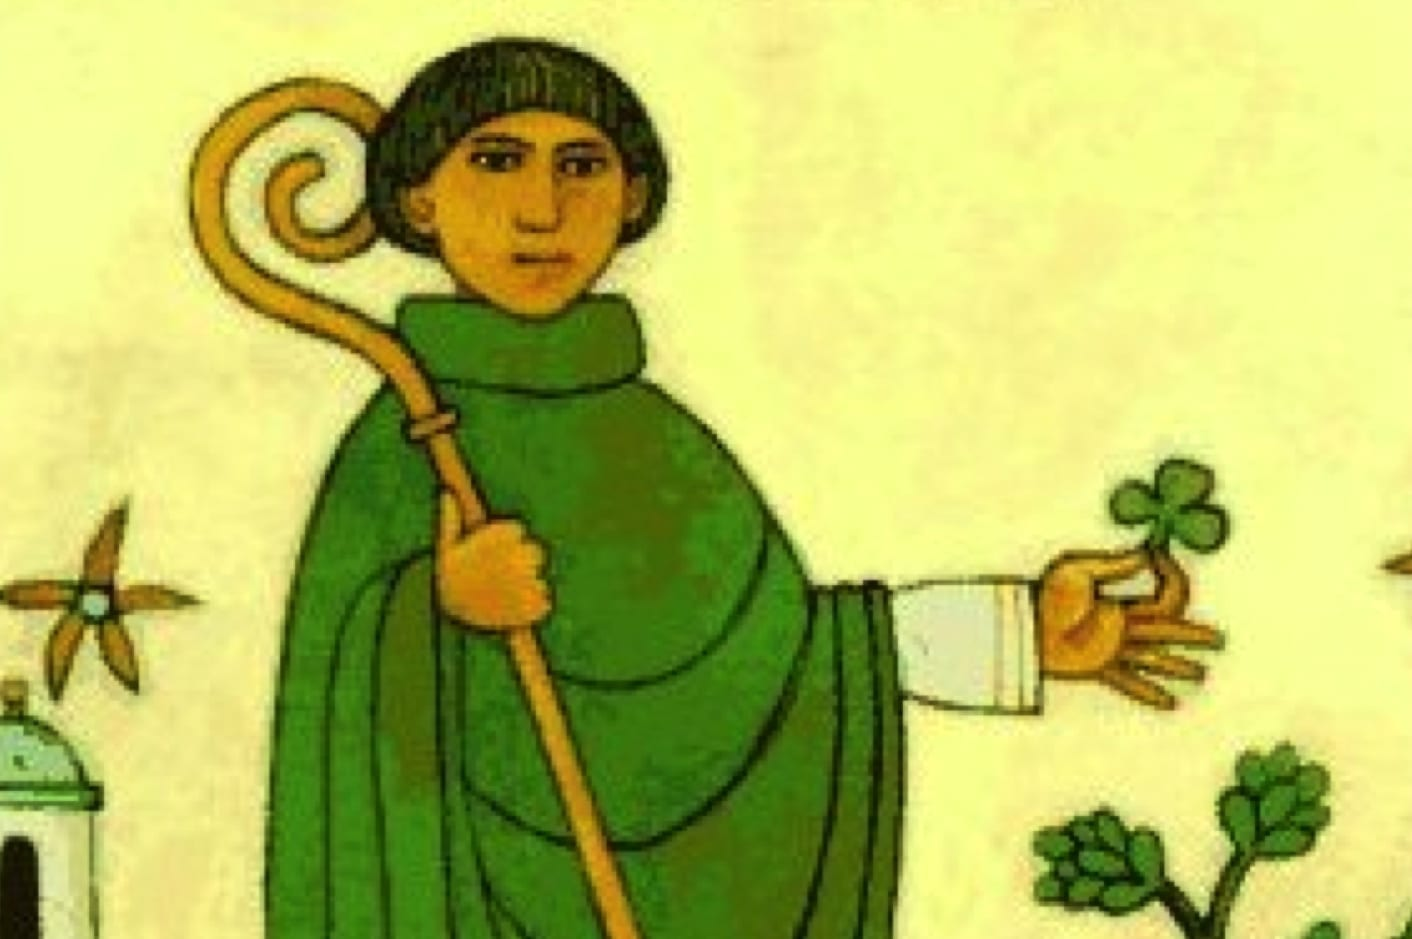 st. saint patrick patrick's day confession March 19